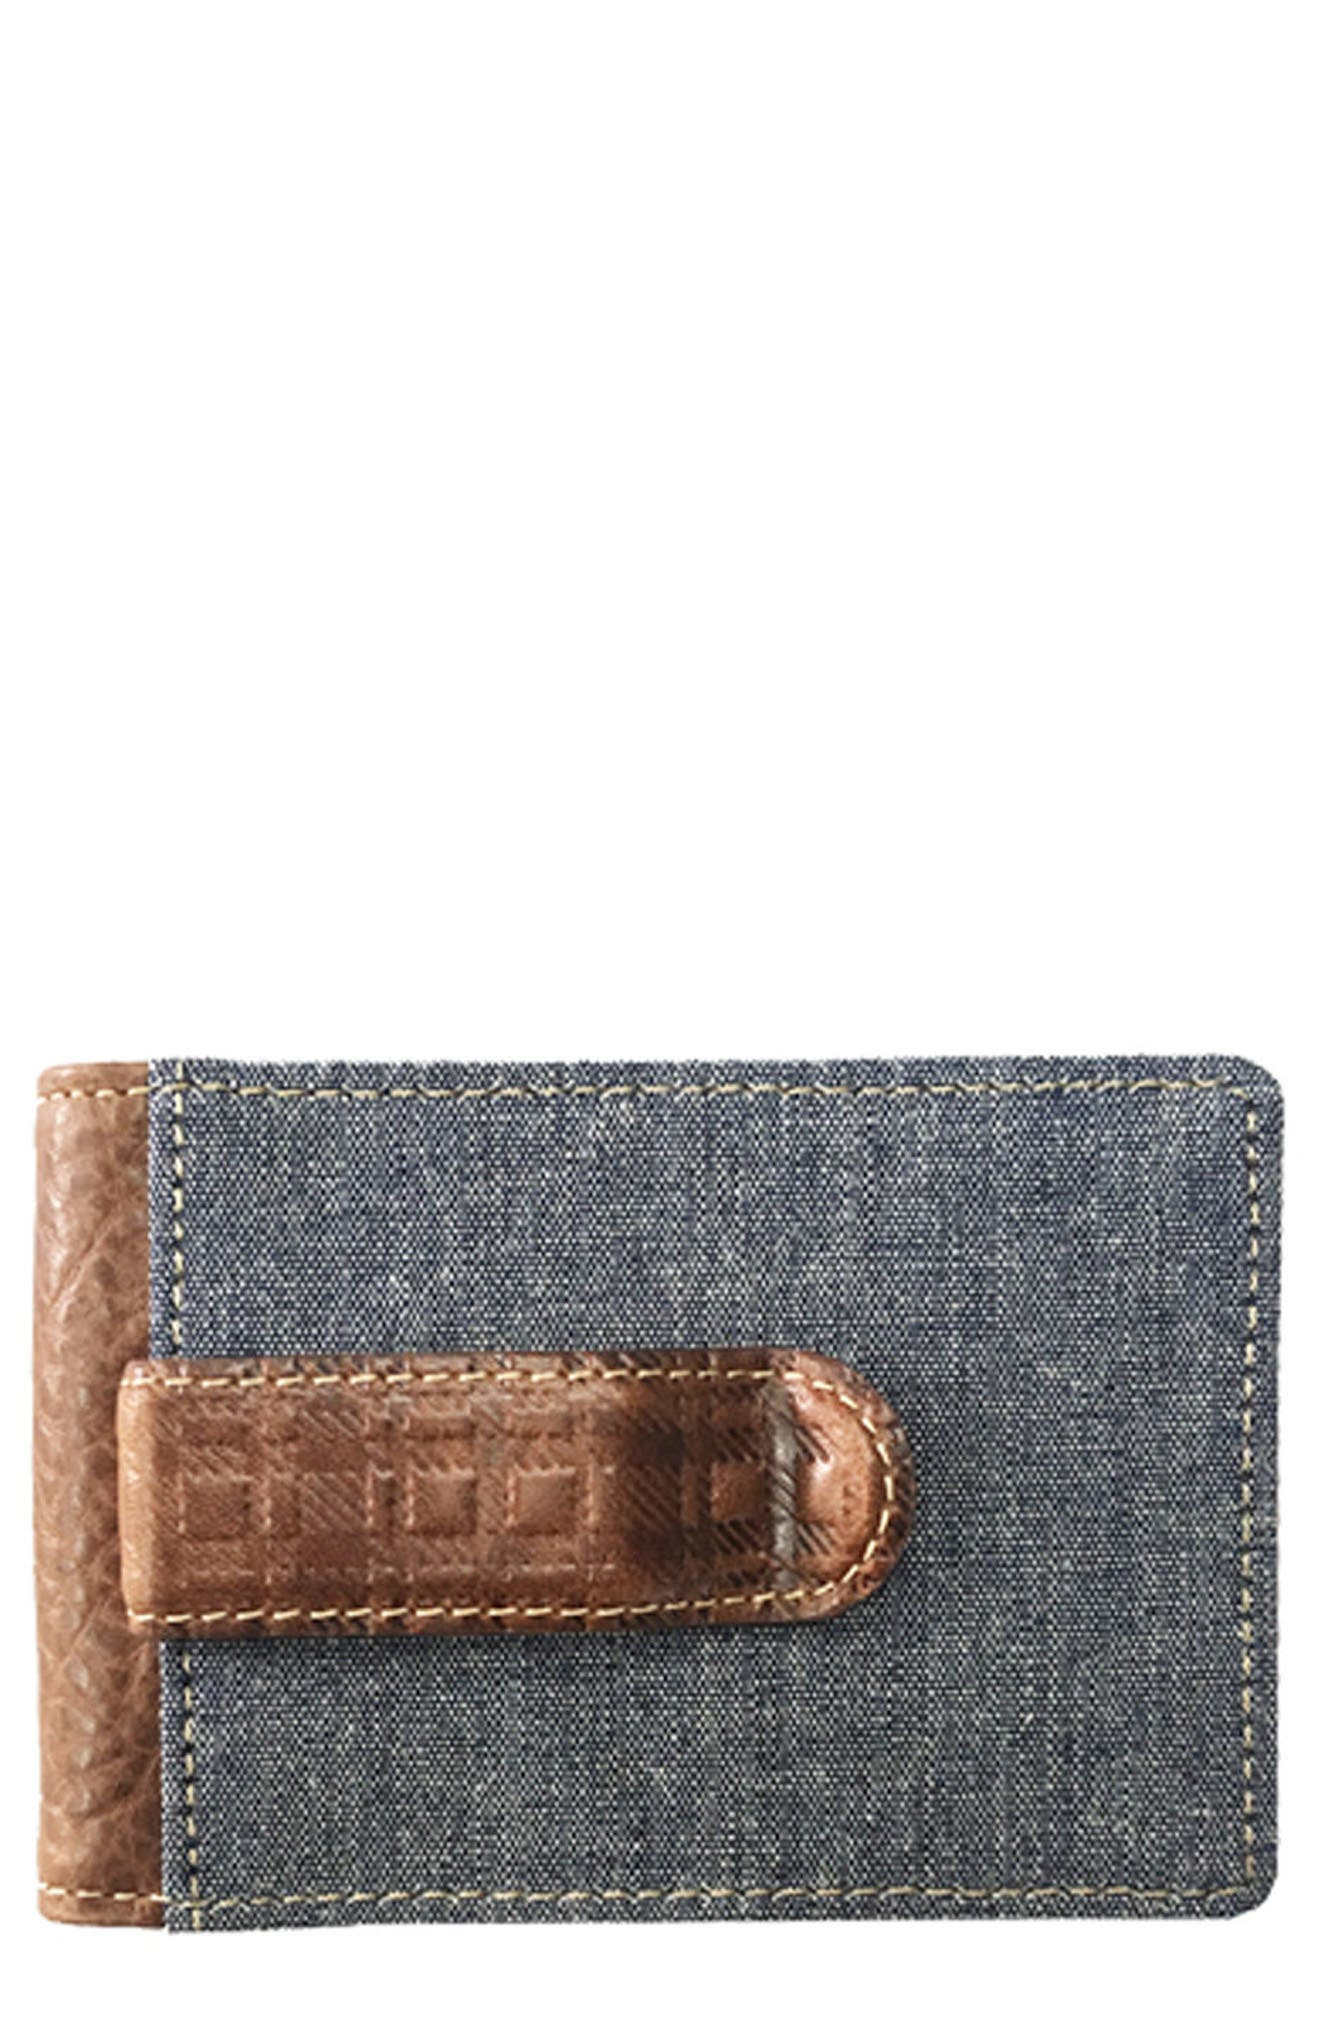 Caleb Bifold Wallet with Money Clip,                             Main thumbnail 1, color,                             Chestnut/ Chambray